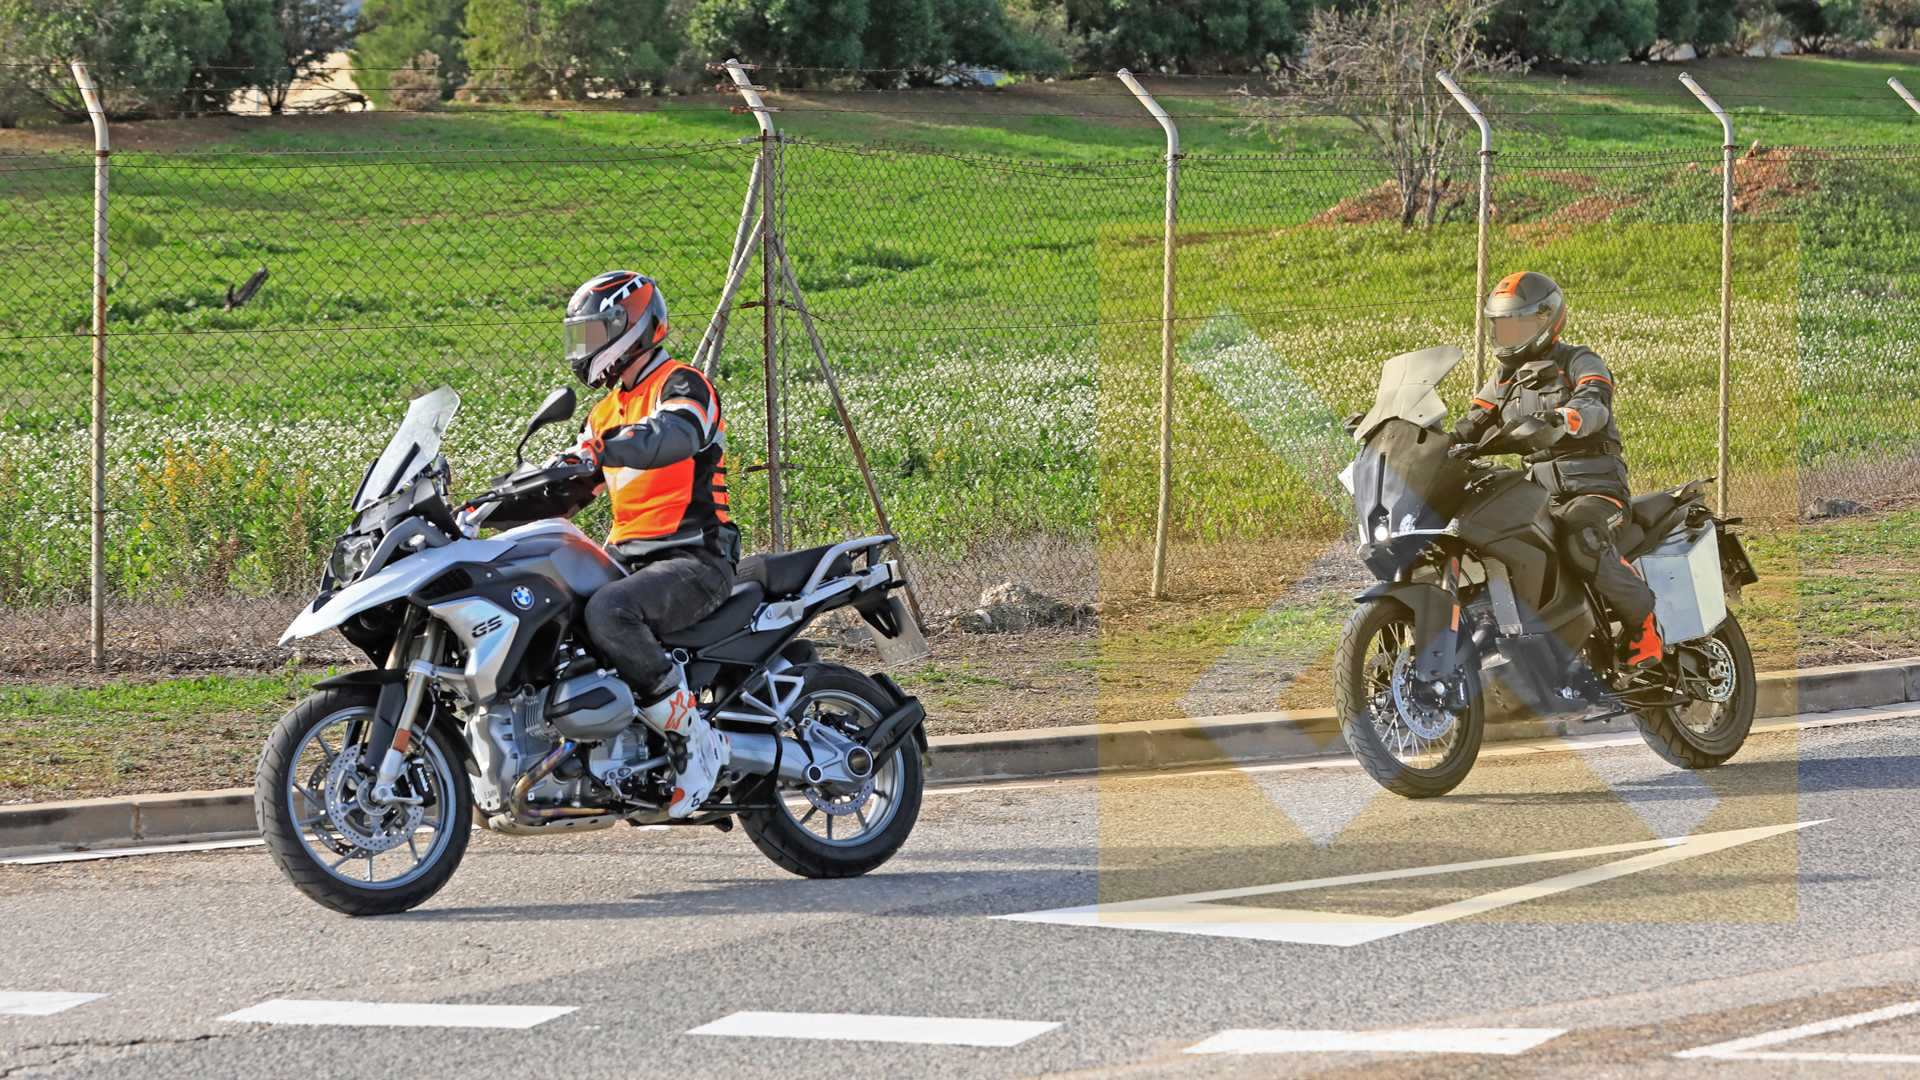 2020-ktm-1290-super-adv-1-9463 KTM 1290 Duke Super Adventure, surprins la teste